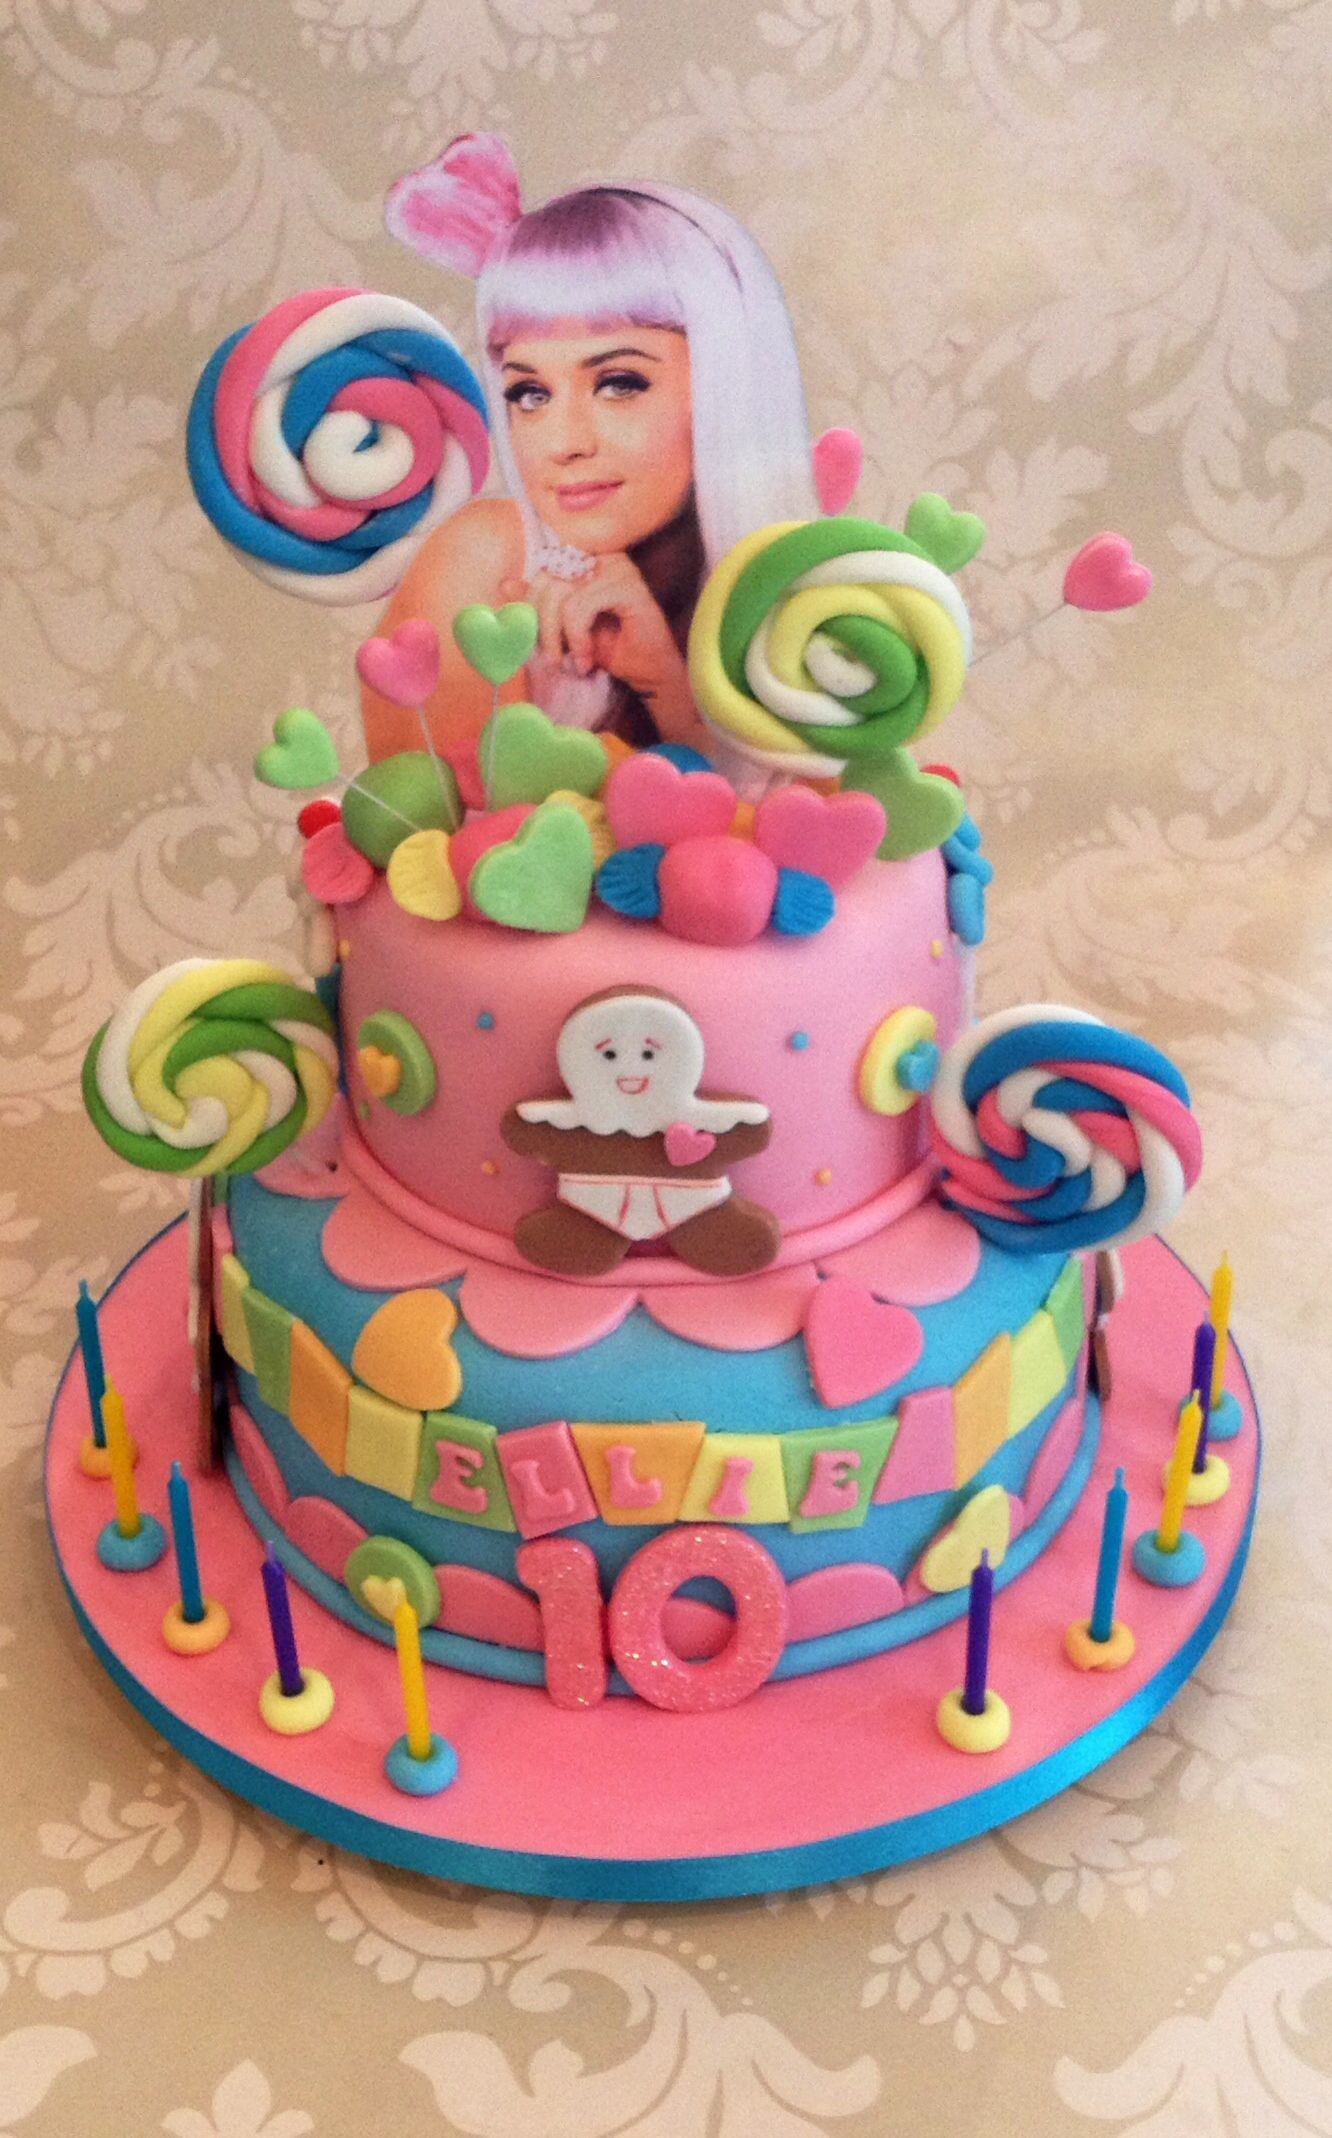 Admirable 30 Wonderful Photo Of Katy Perry Birthday Cake With Images Personalised Birthday Cards Veneteletsinfo